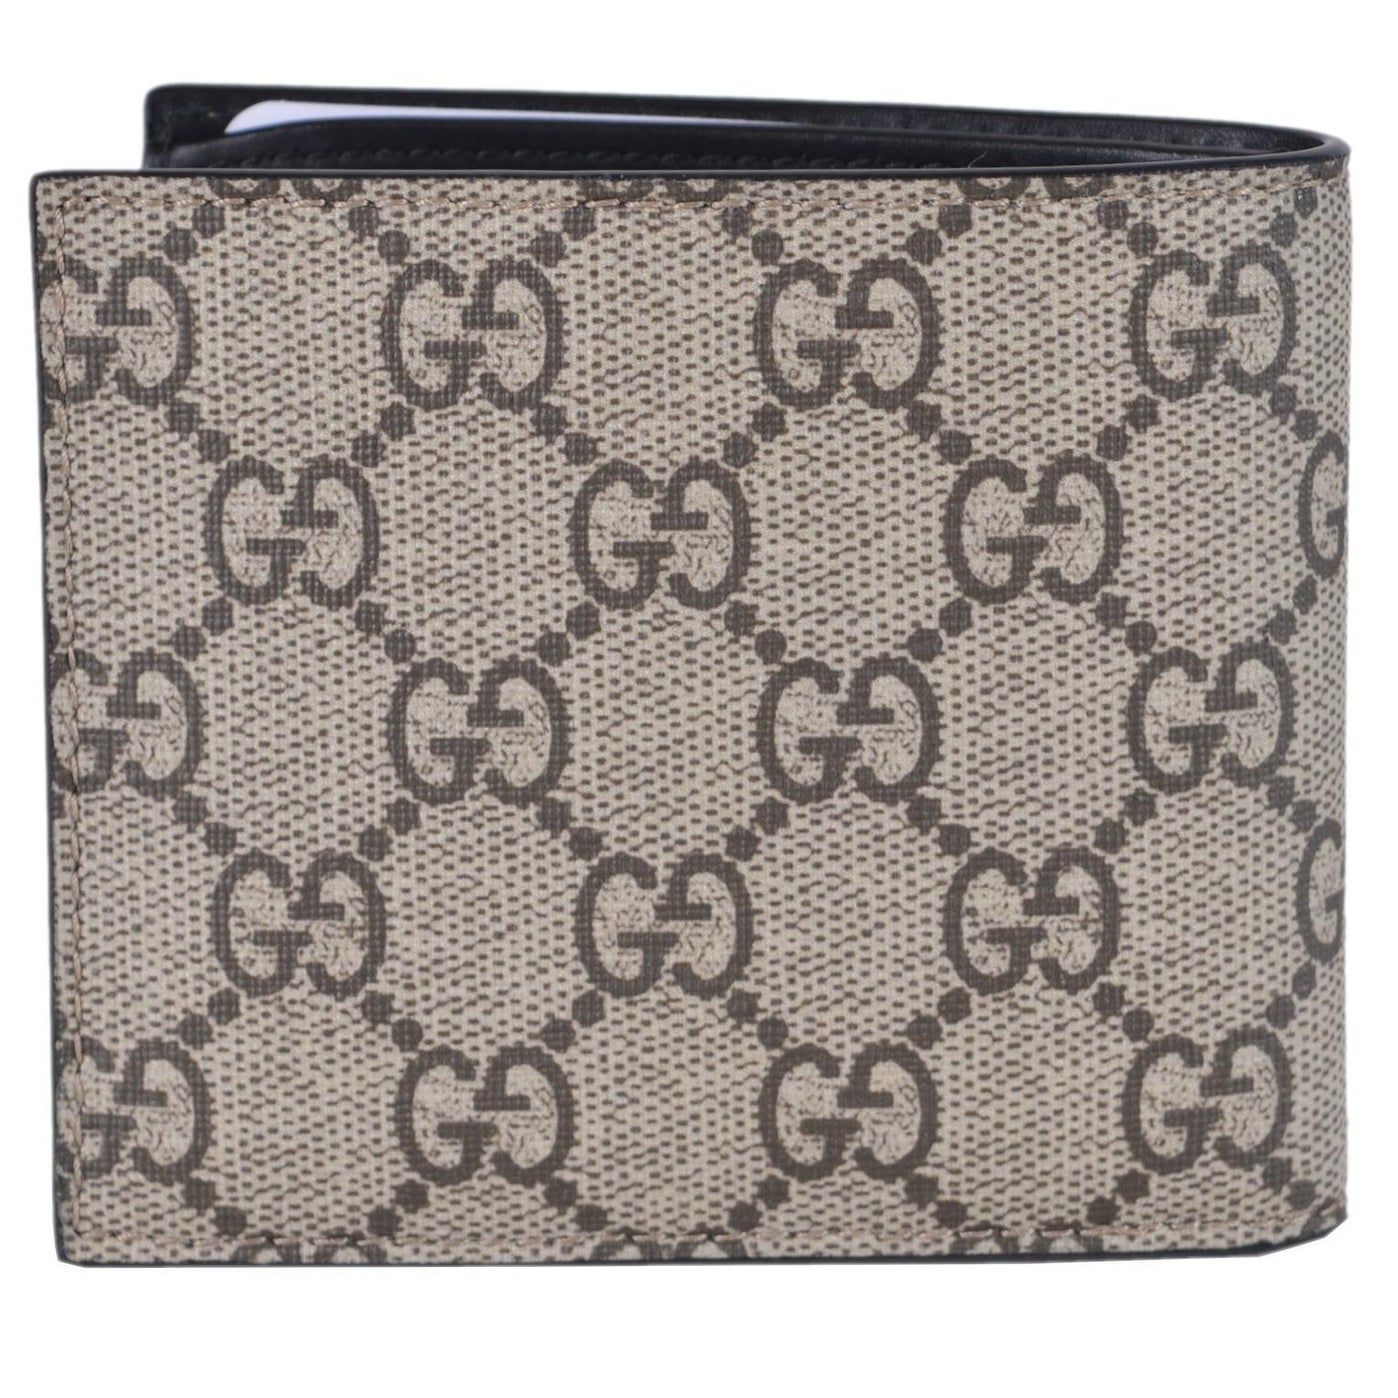 32419b629909 Shop Gucci Men's Beige GG Supreme Canvas Large Bee Logo Bifold Wallet -  4.25